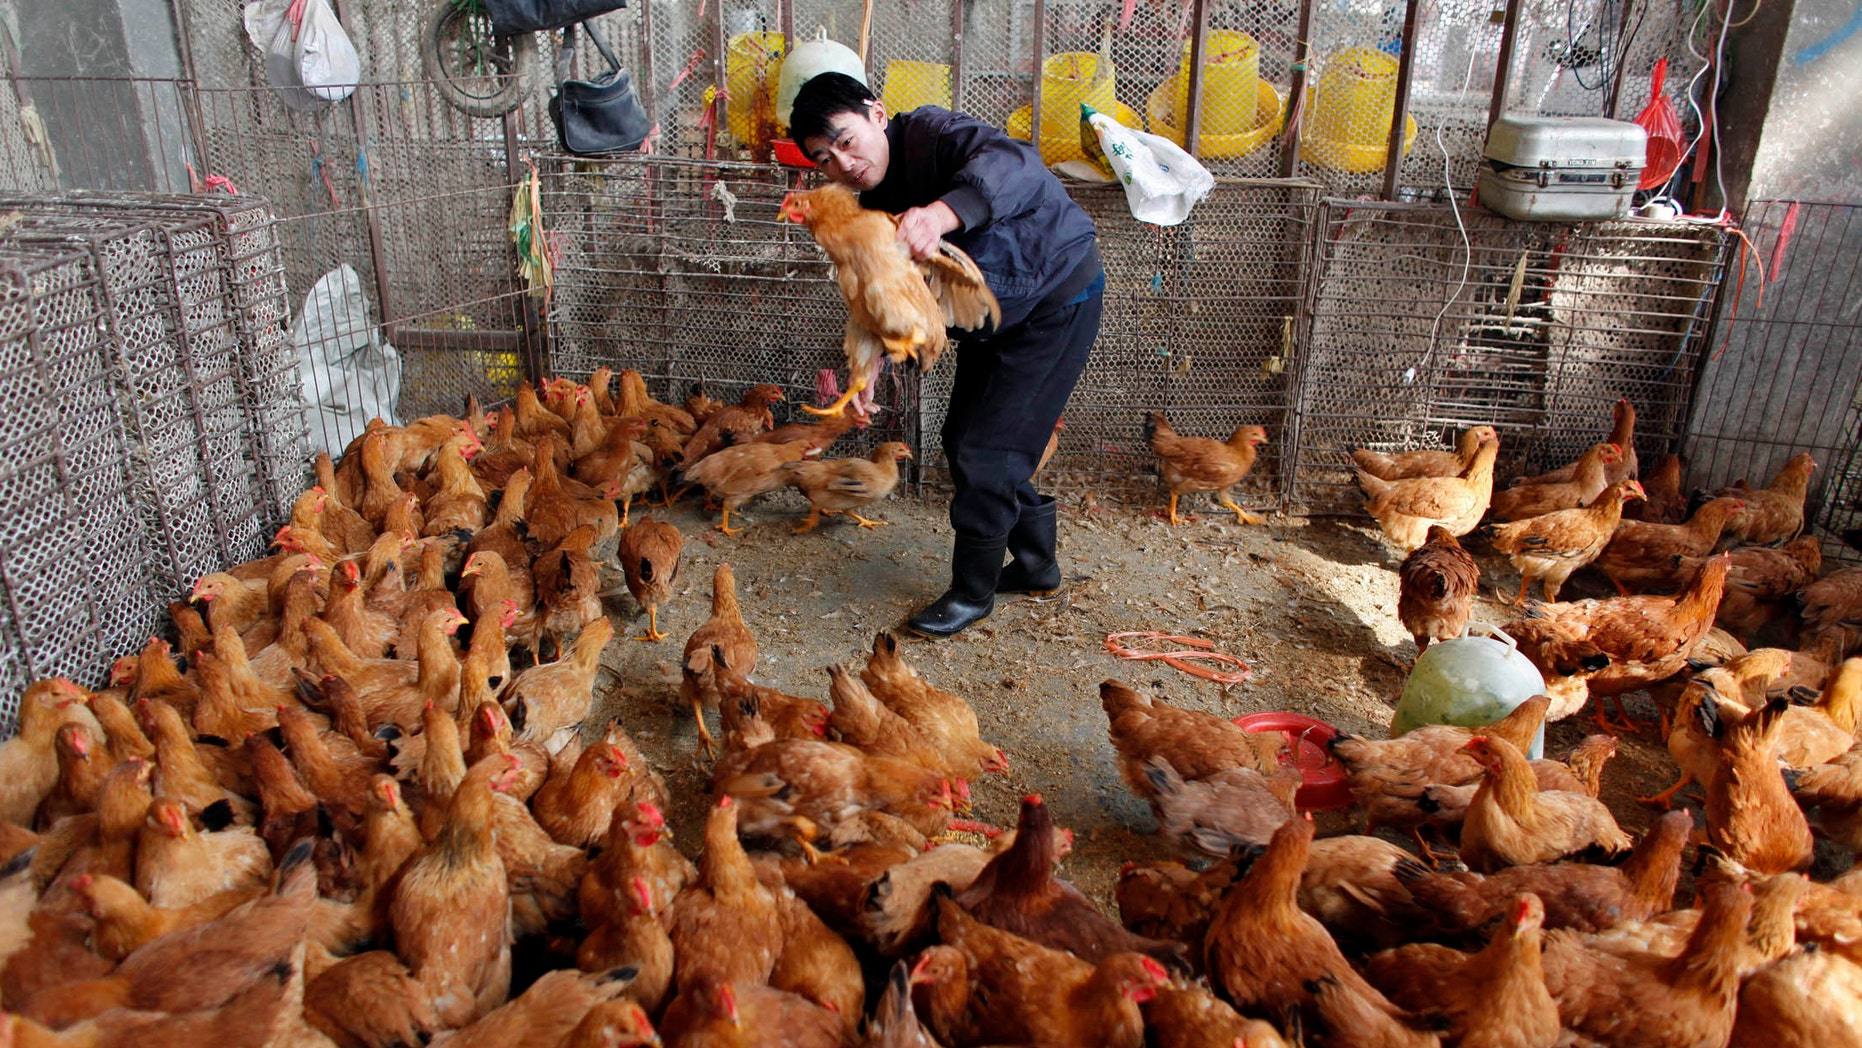 A worker checks a chicken as he collects it for a customer at a poultry market in Shanghai.